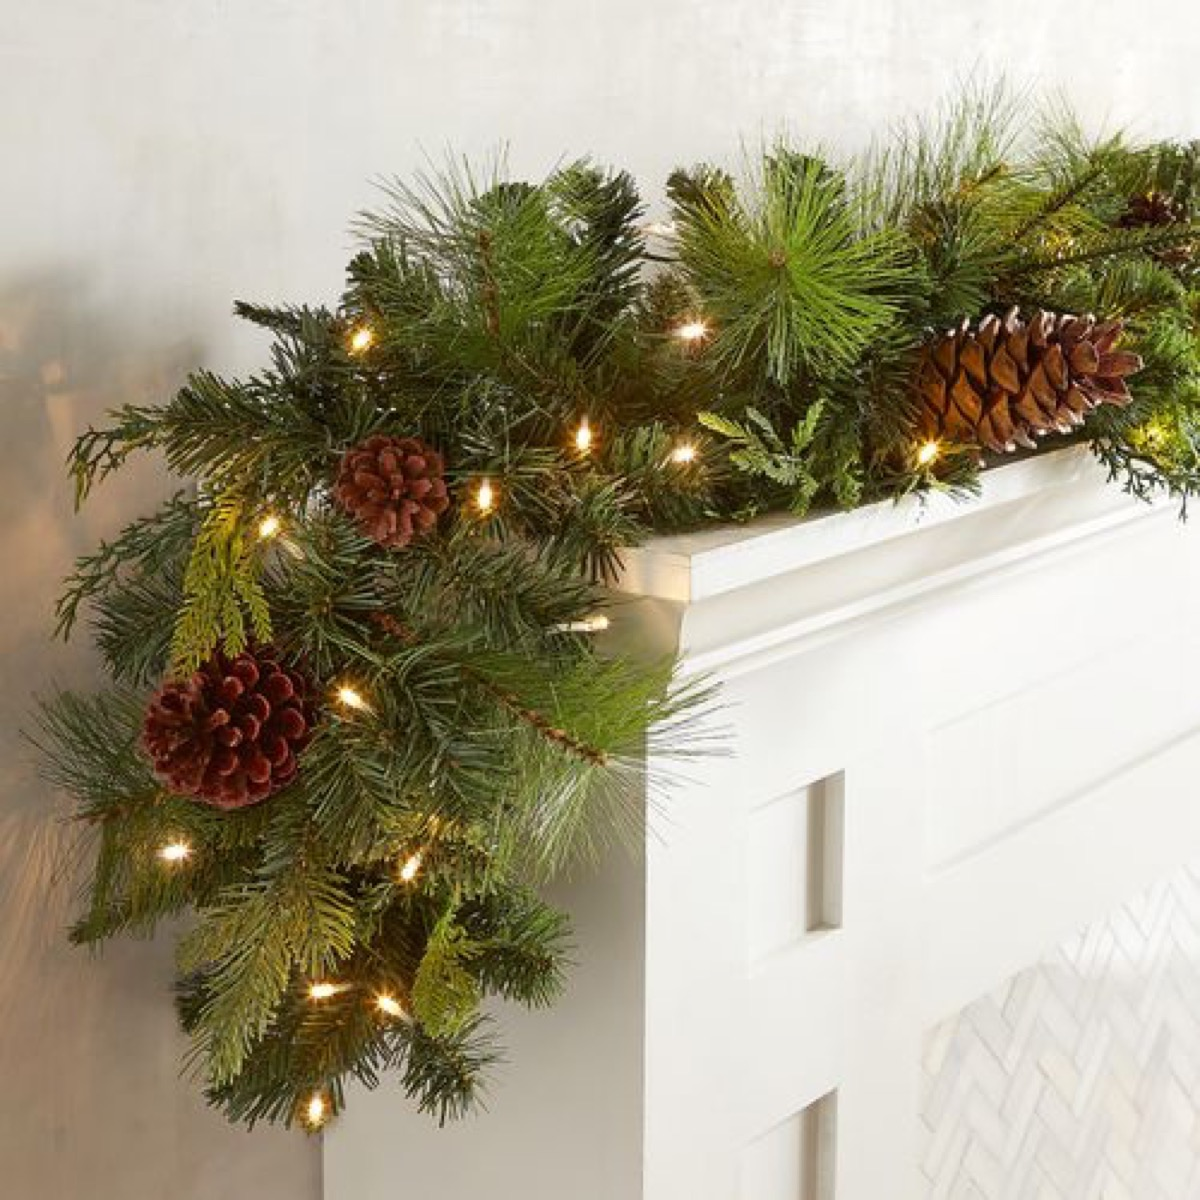 Pier1 Faux Garland buy after holidays